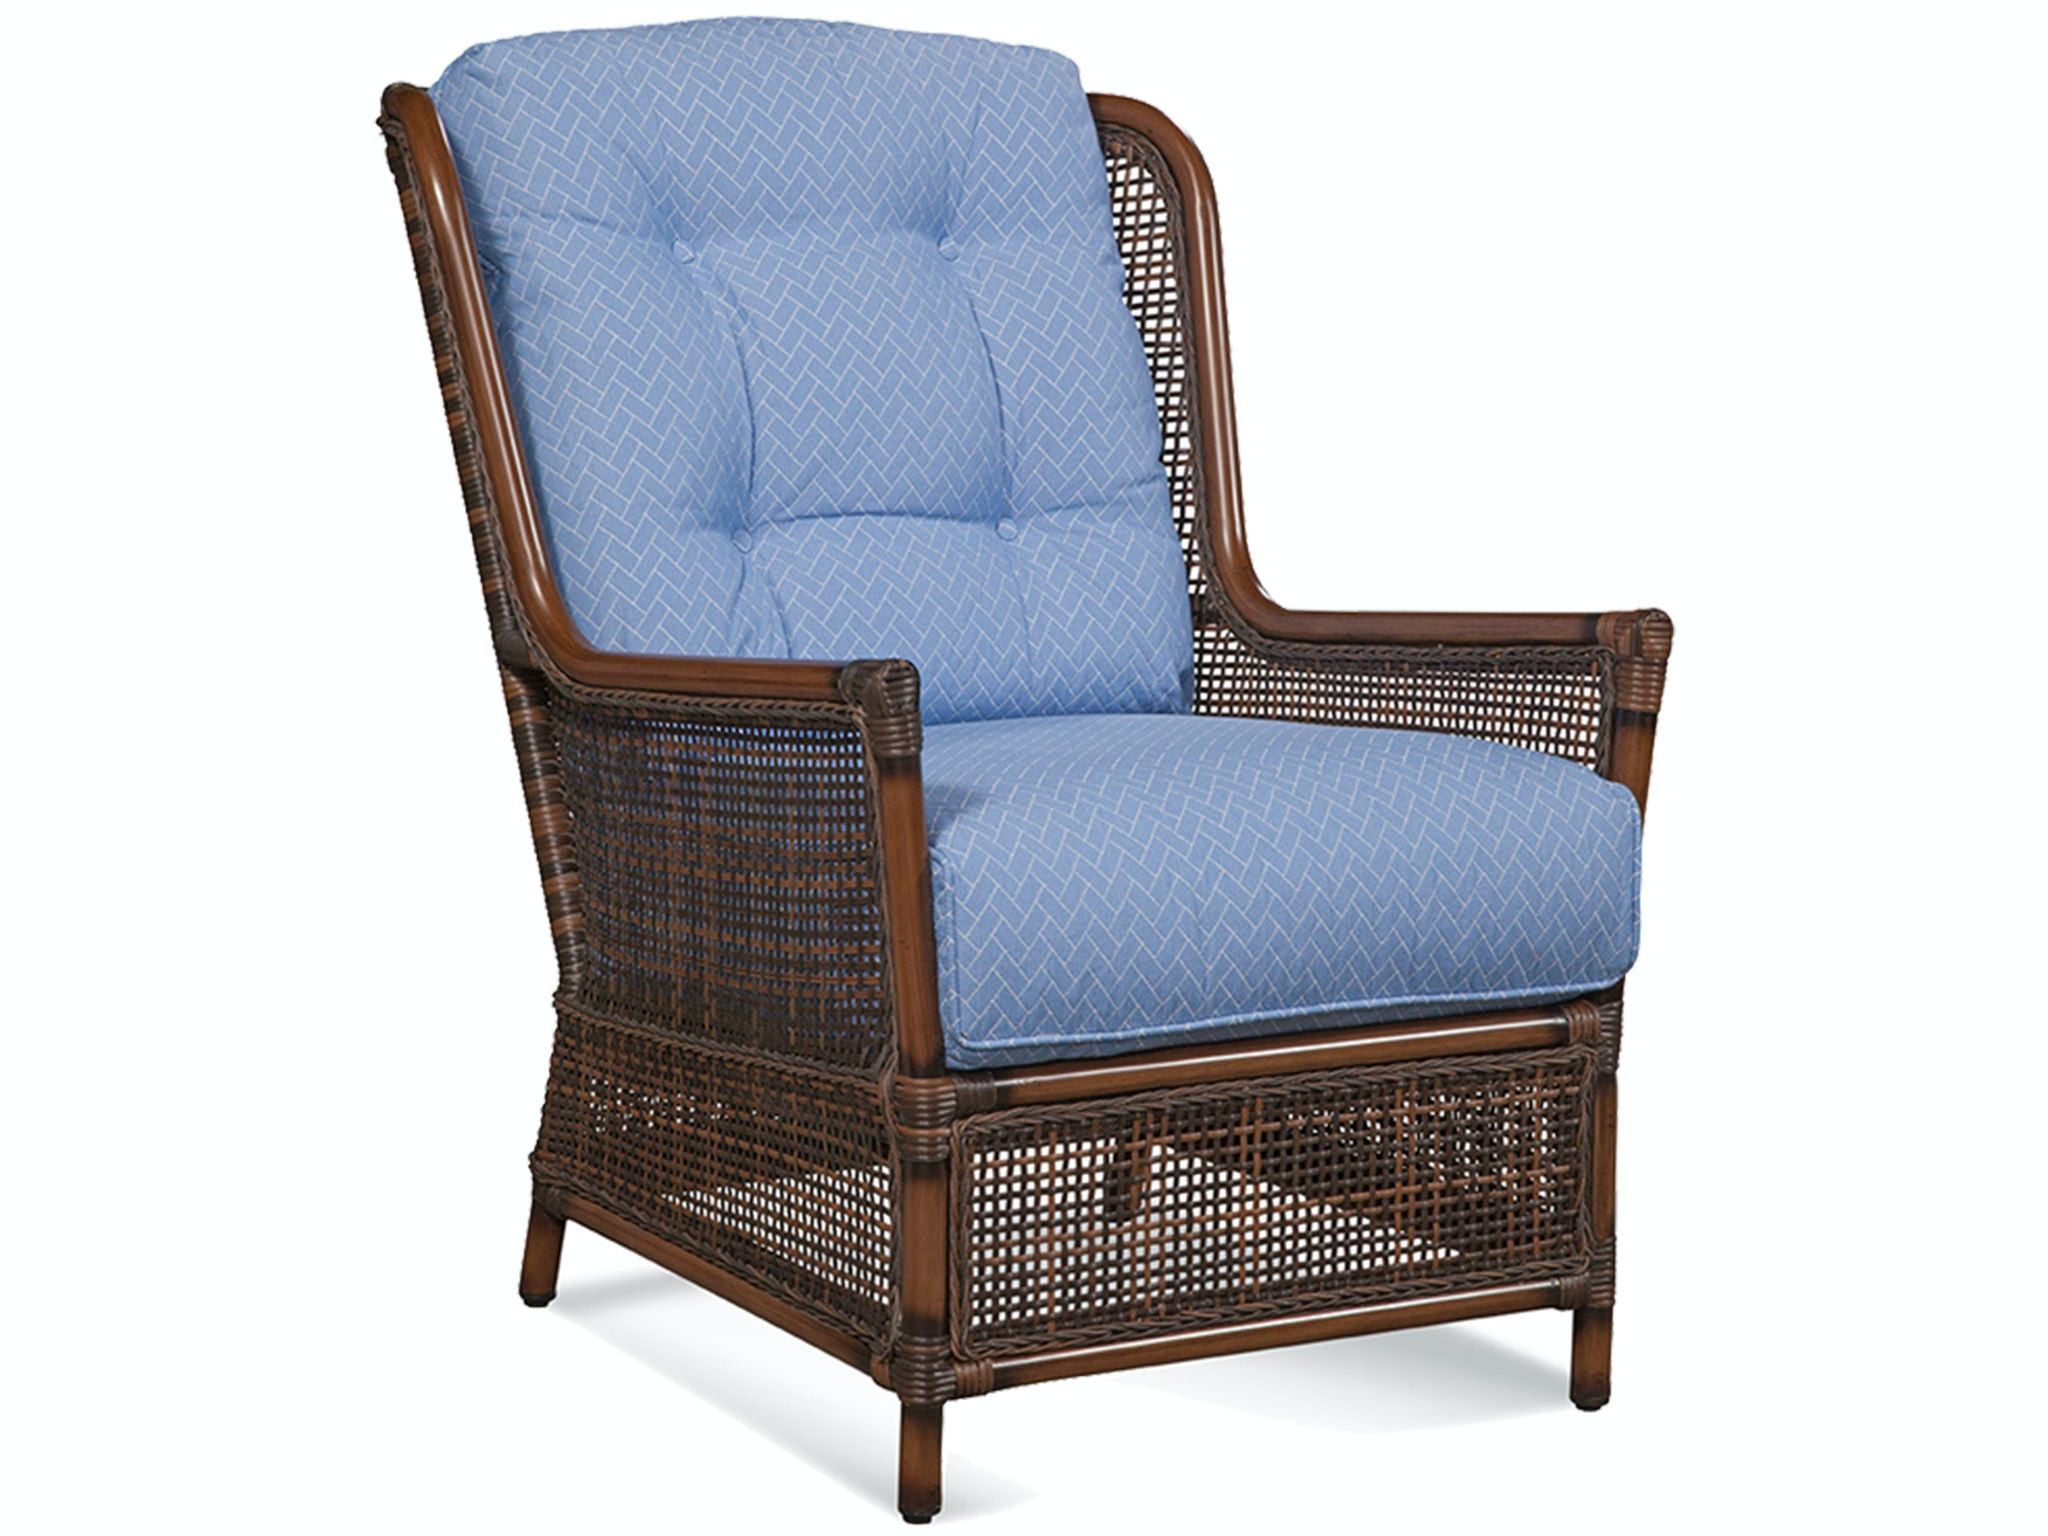 Braxton Culler Outdoor/Patio Chair 440-001 - Haynes Brothers - Volusia County